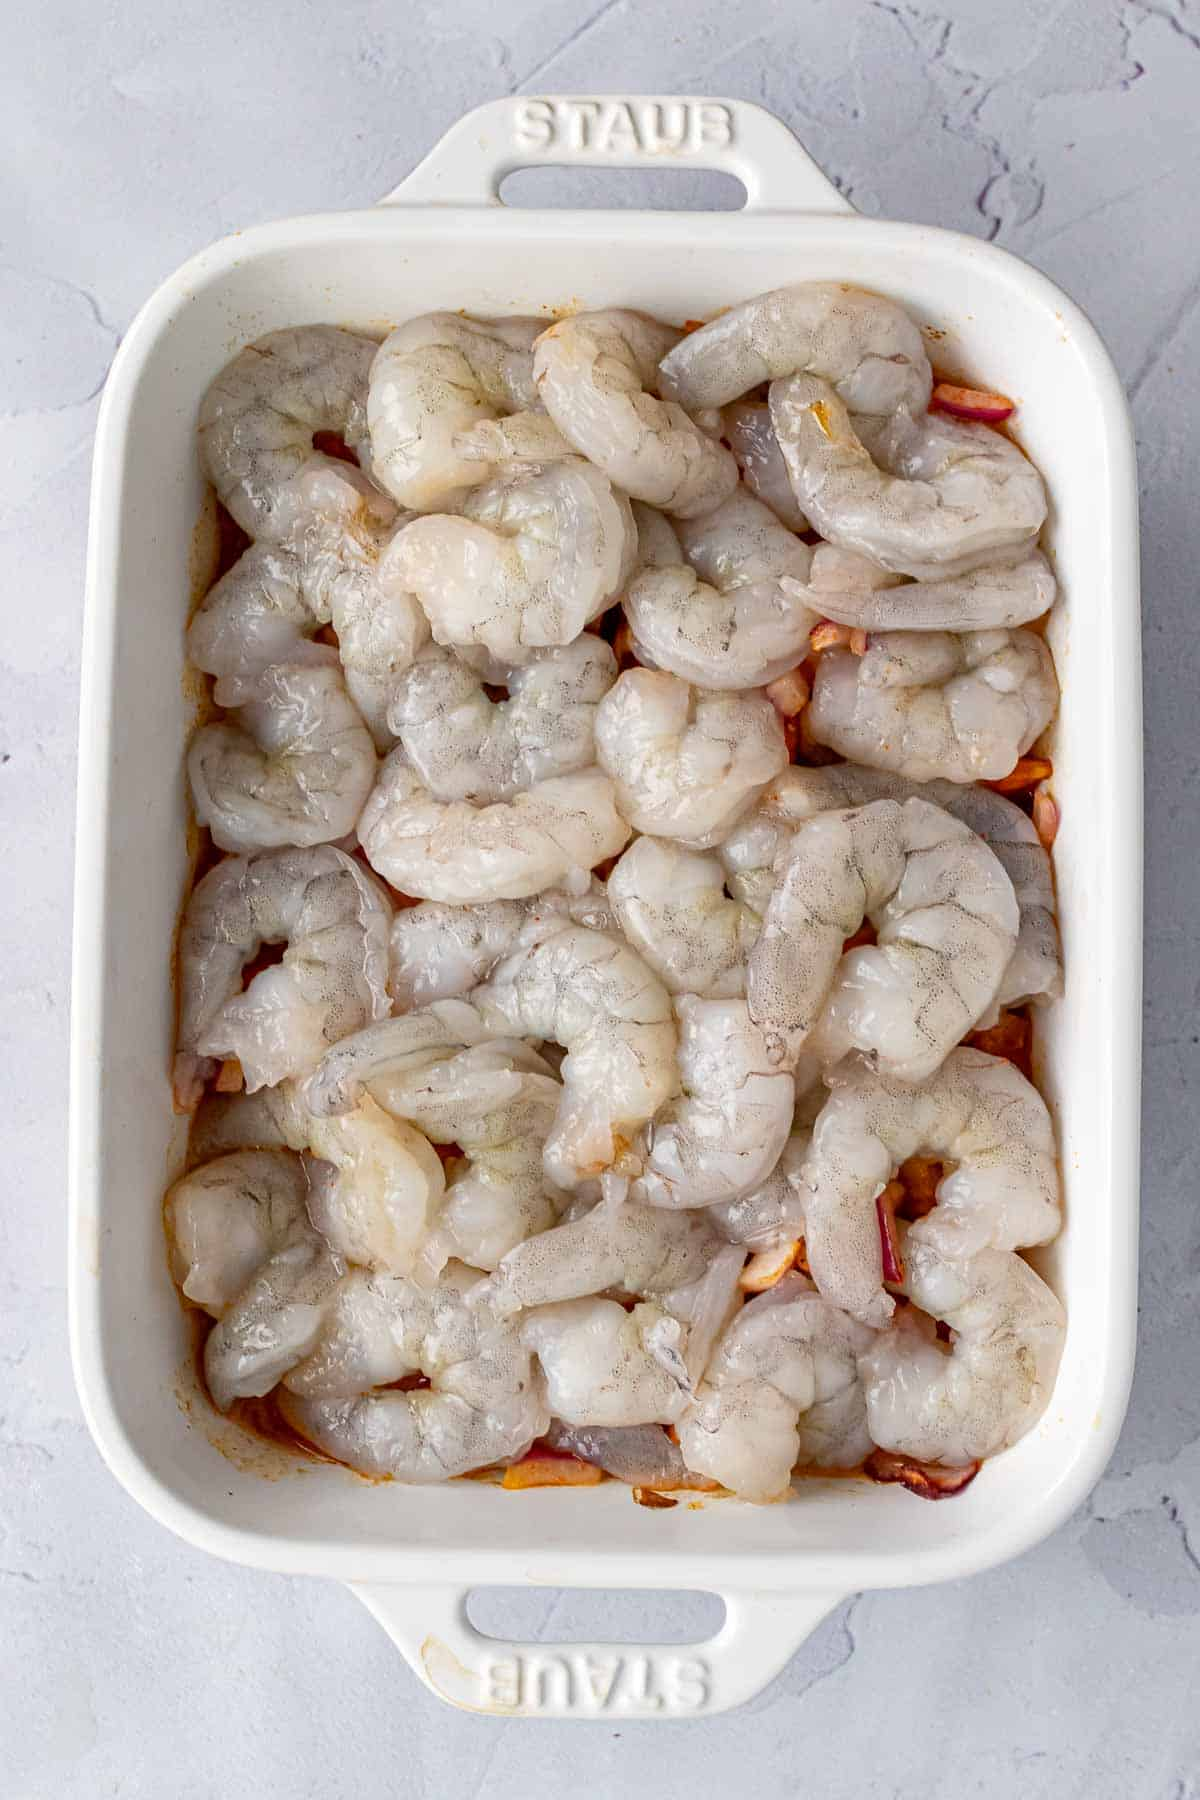 Layer of shrimp on top of the veggies in a baking dish